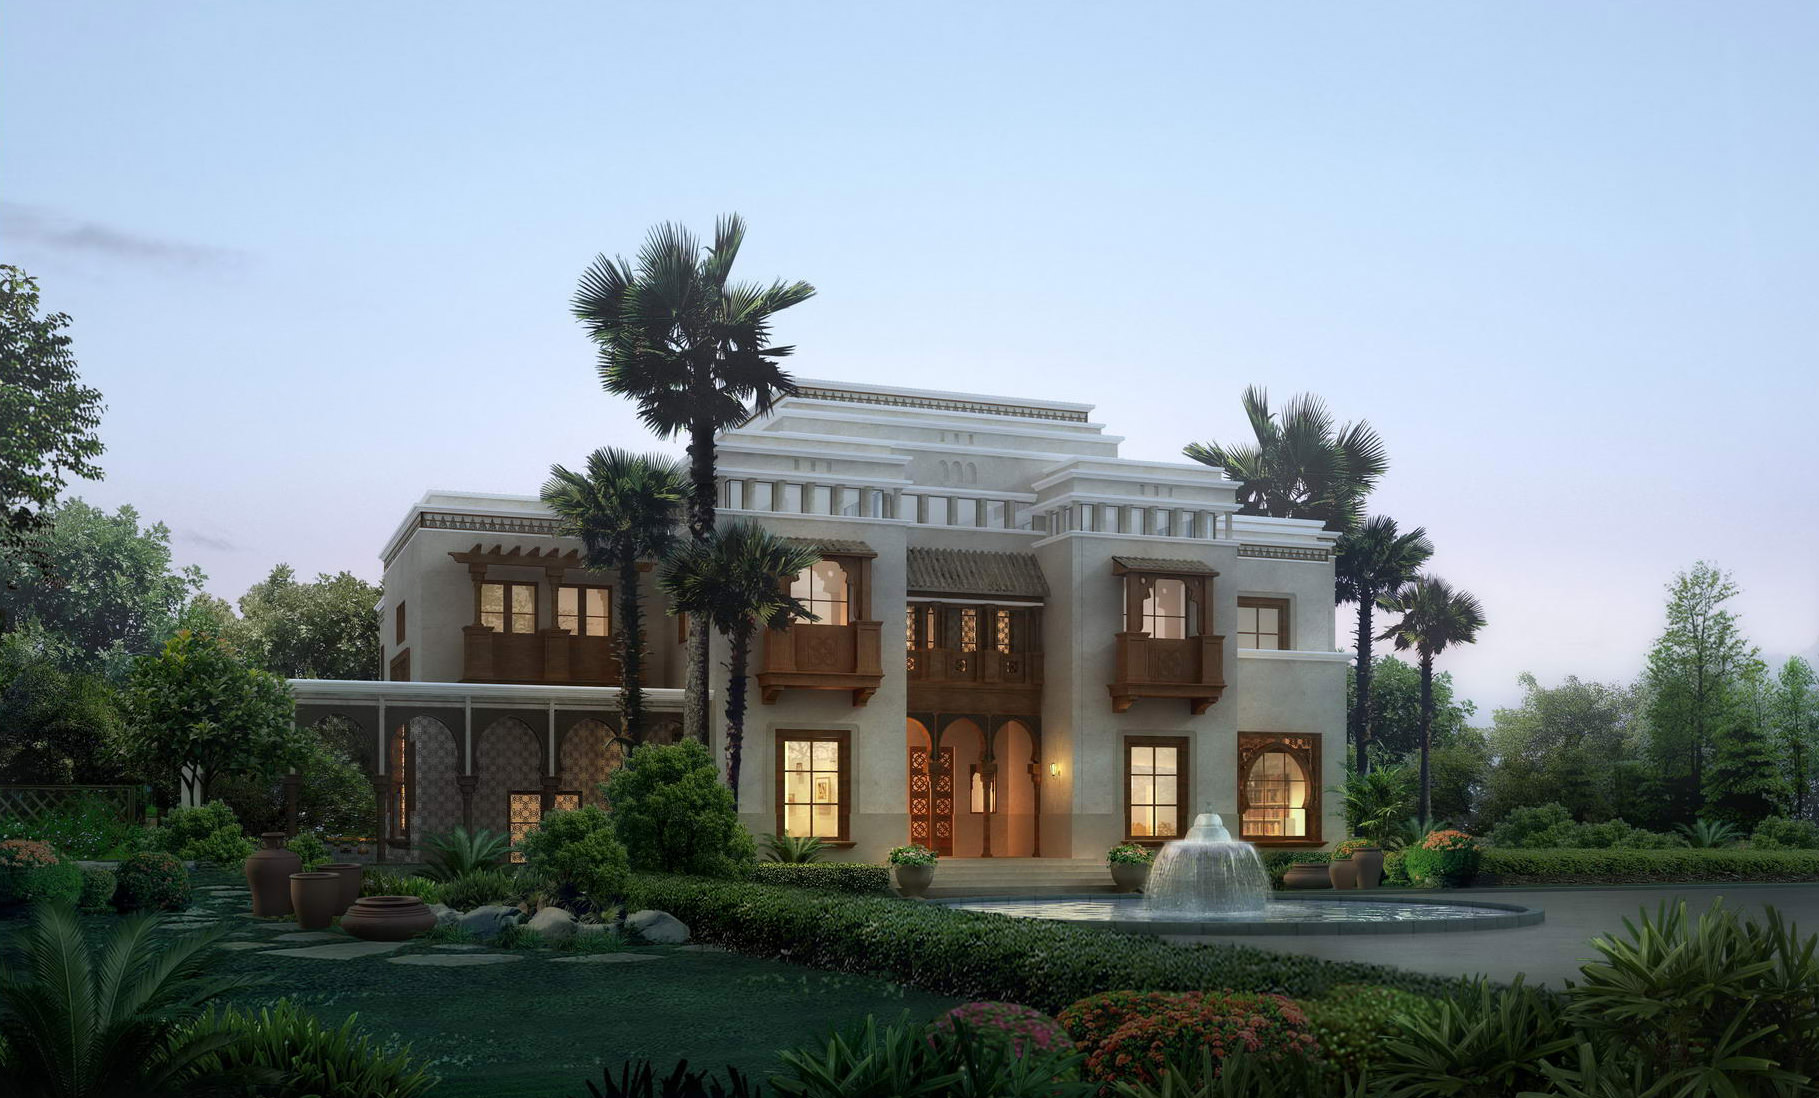 Luxury villa with palm tree 3d model max for Luxury home models